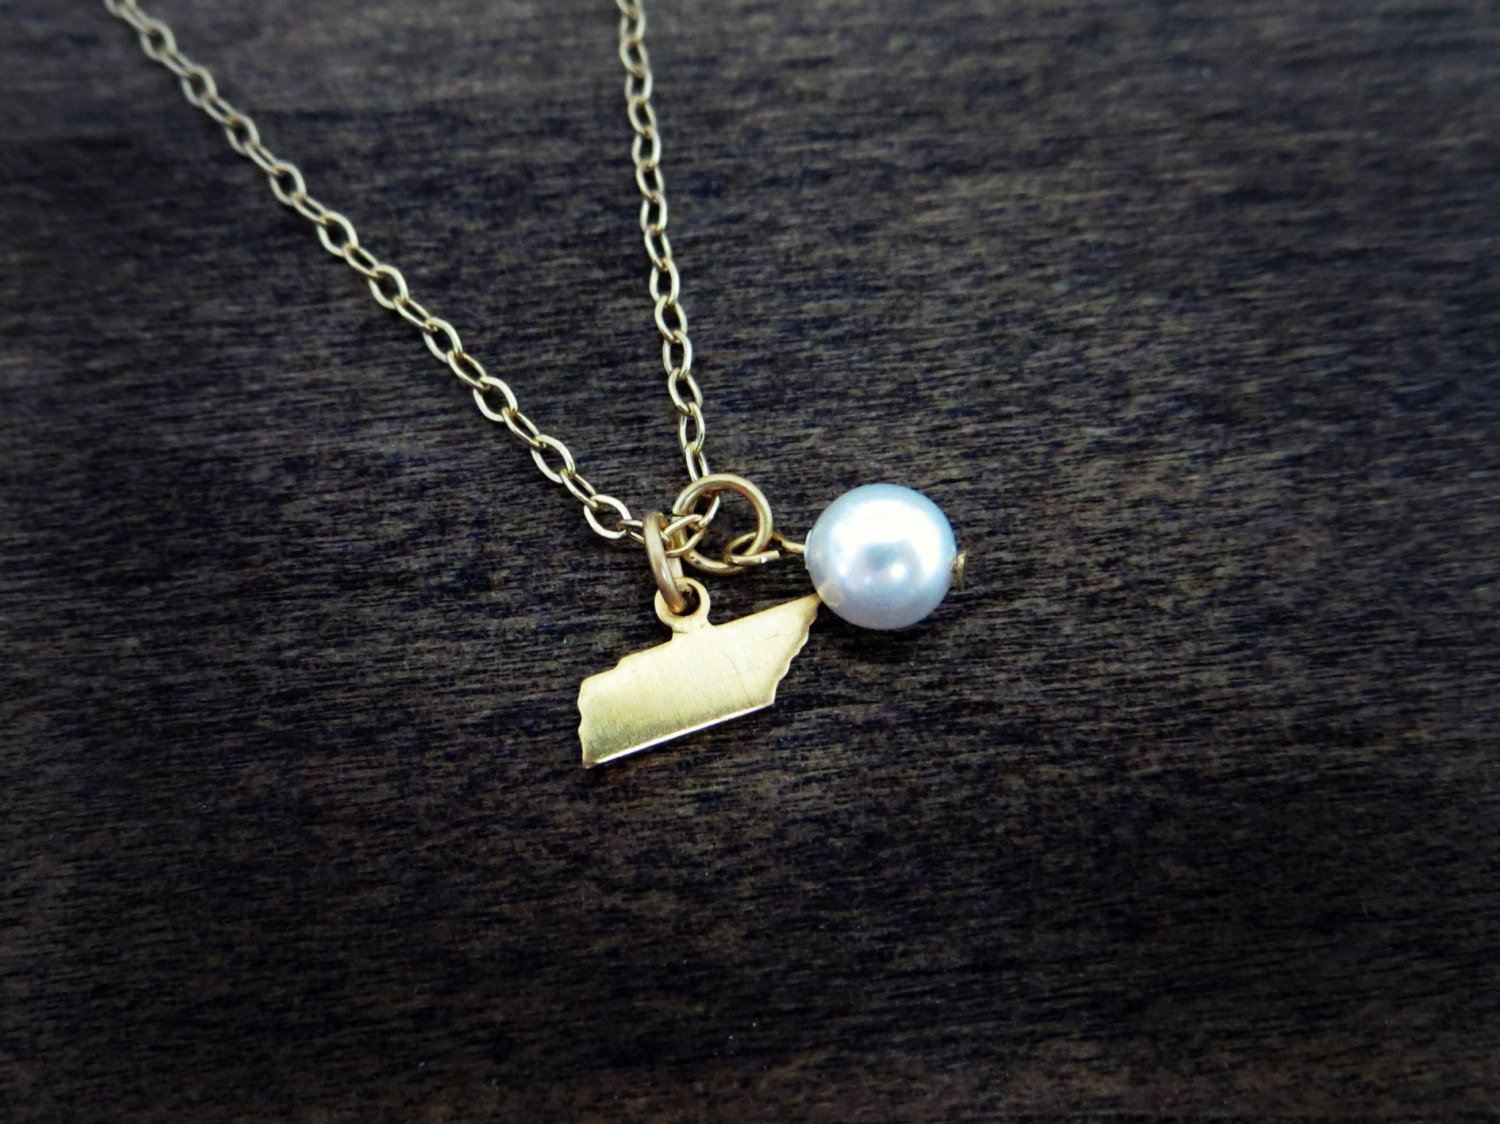 Tennessee State Charm Necklace With Swarovski Pearl (Satin Gold, 18 inches)